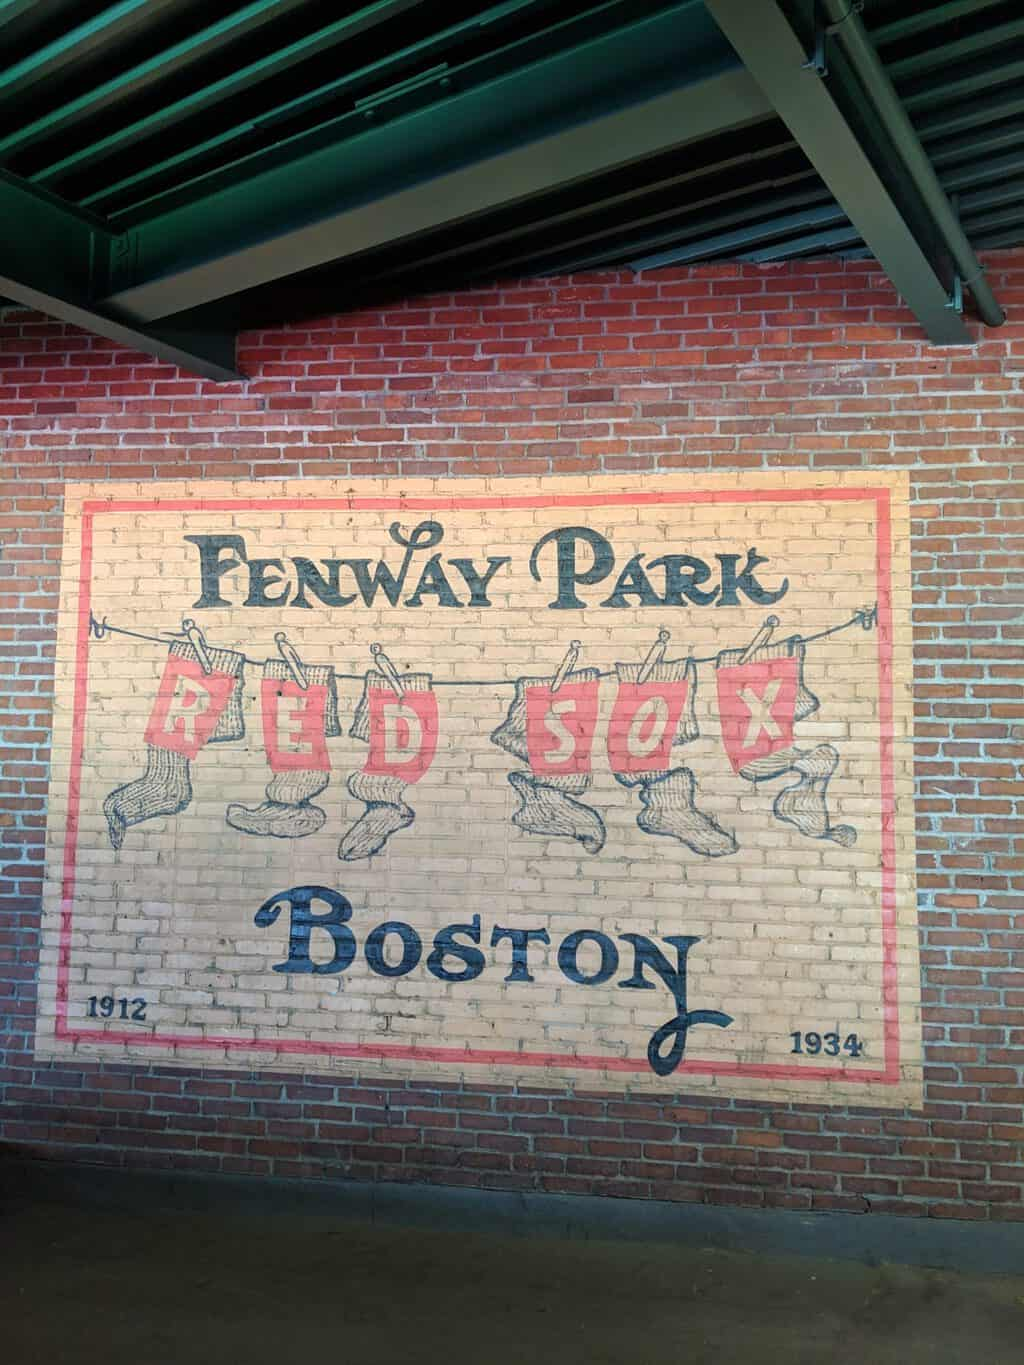 A historic mural on a brick wall inside Fenway Park, Boston.